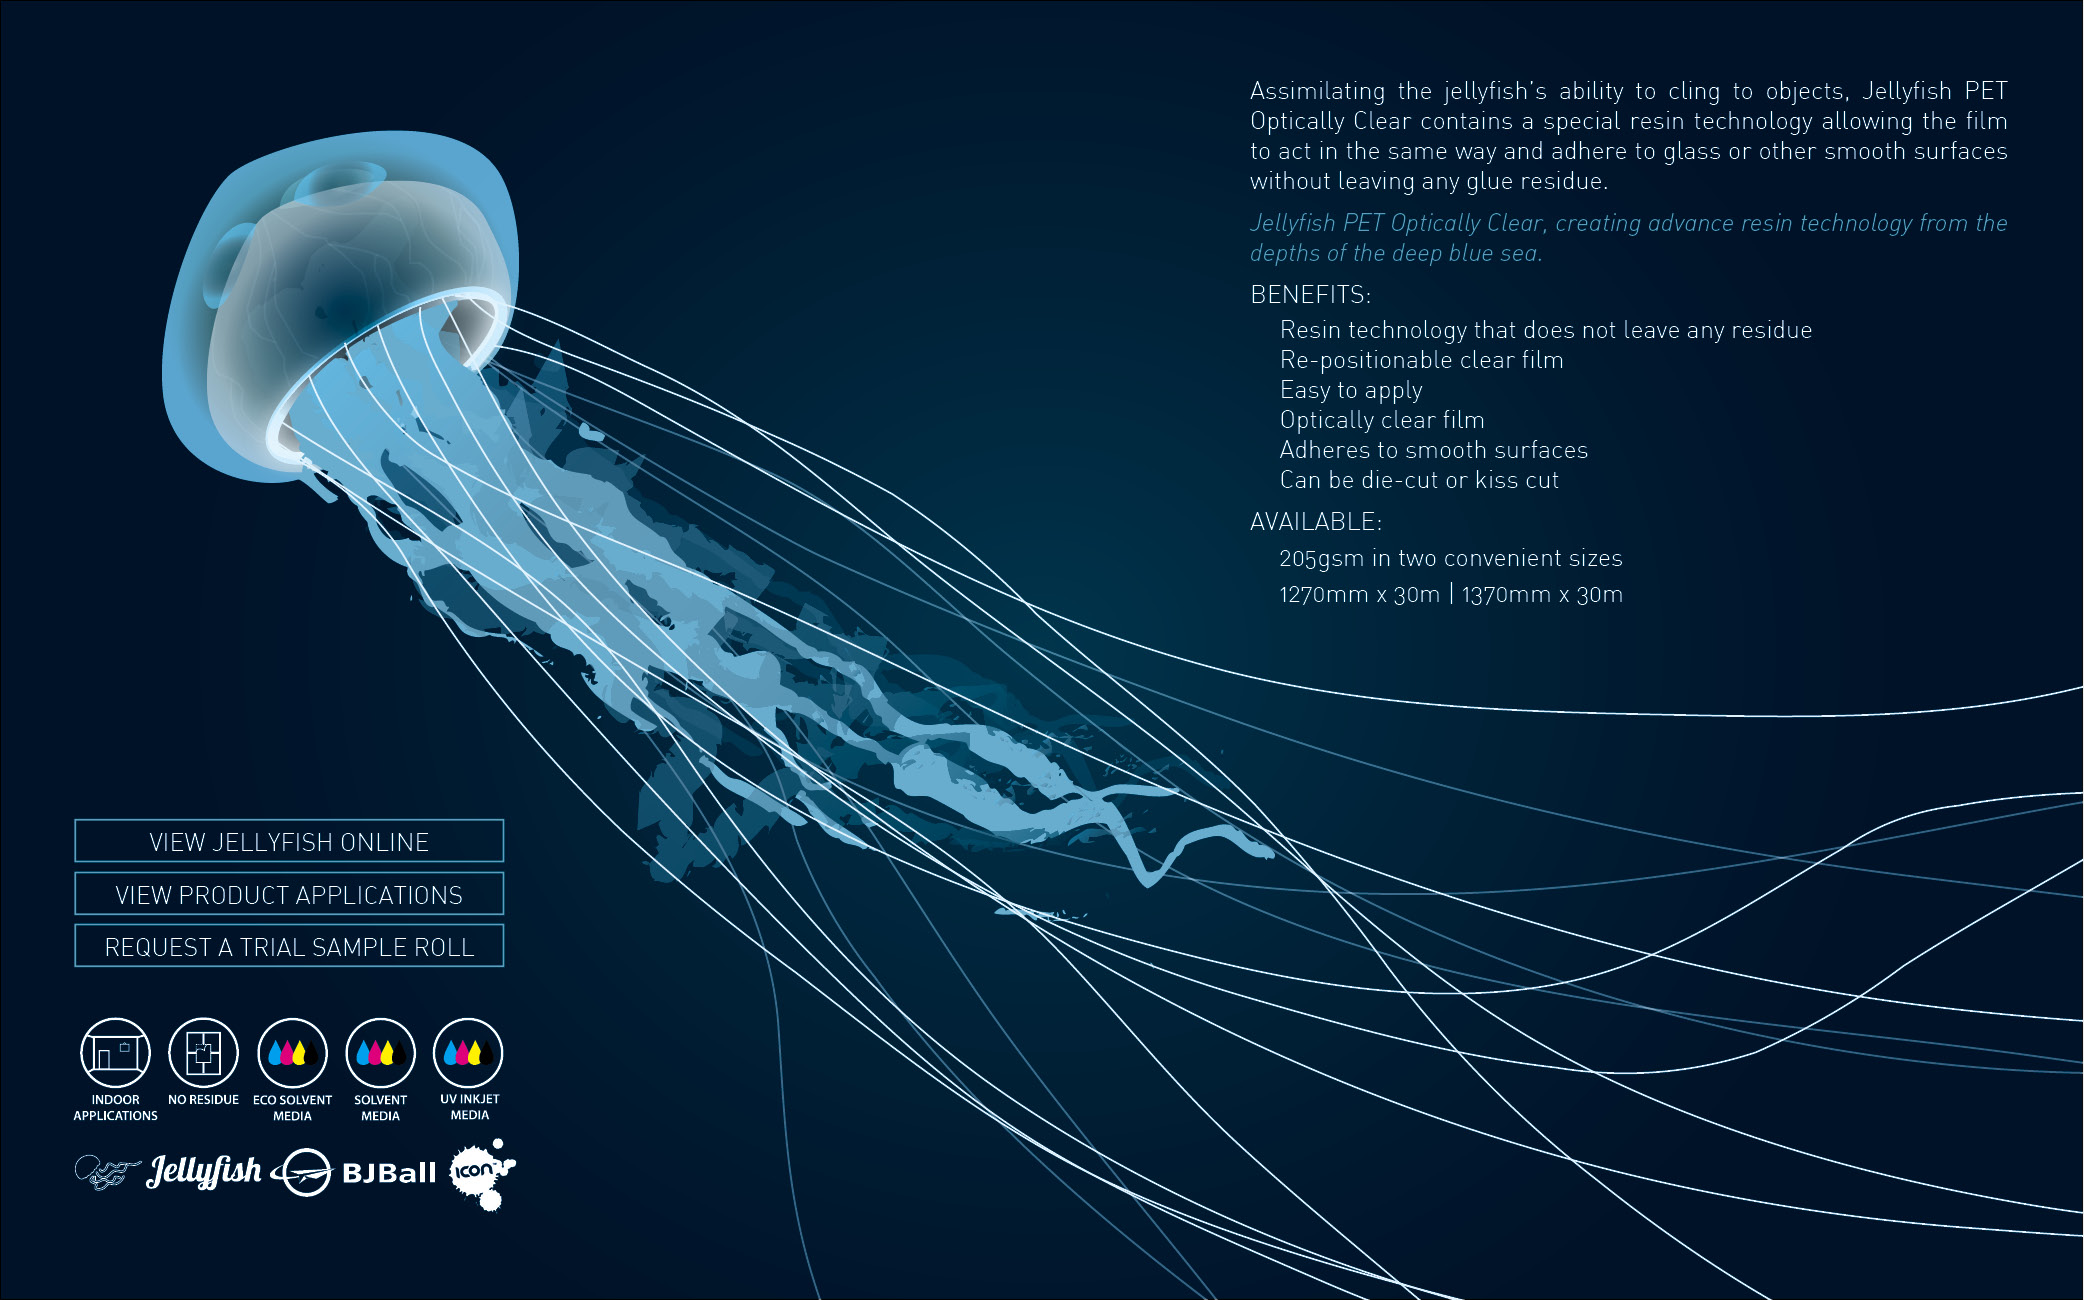 Email Marketing Campaign - Jelly fish